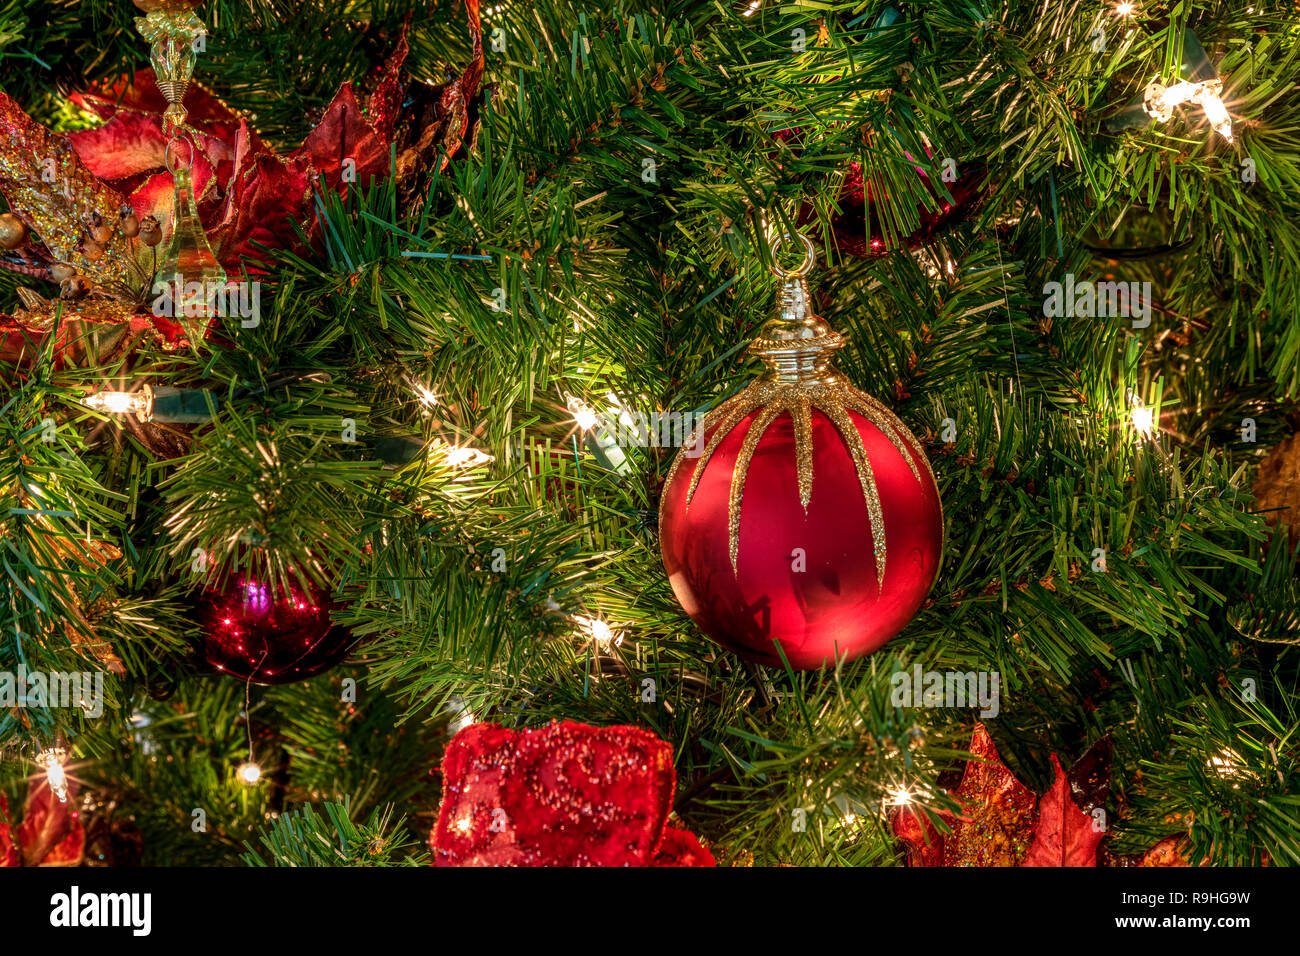 Christmas Tree Bows Red.Red And Green Ornaments On A Christmas Tree With White